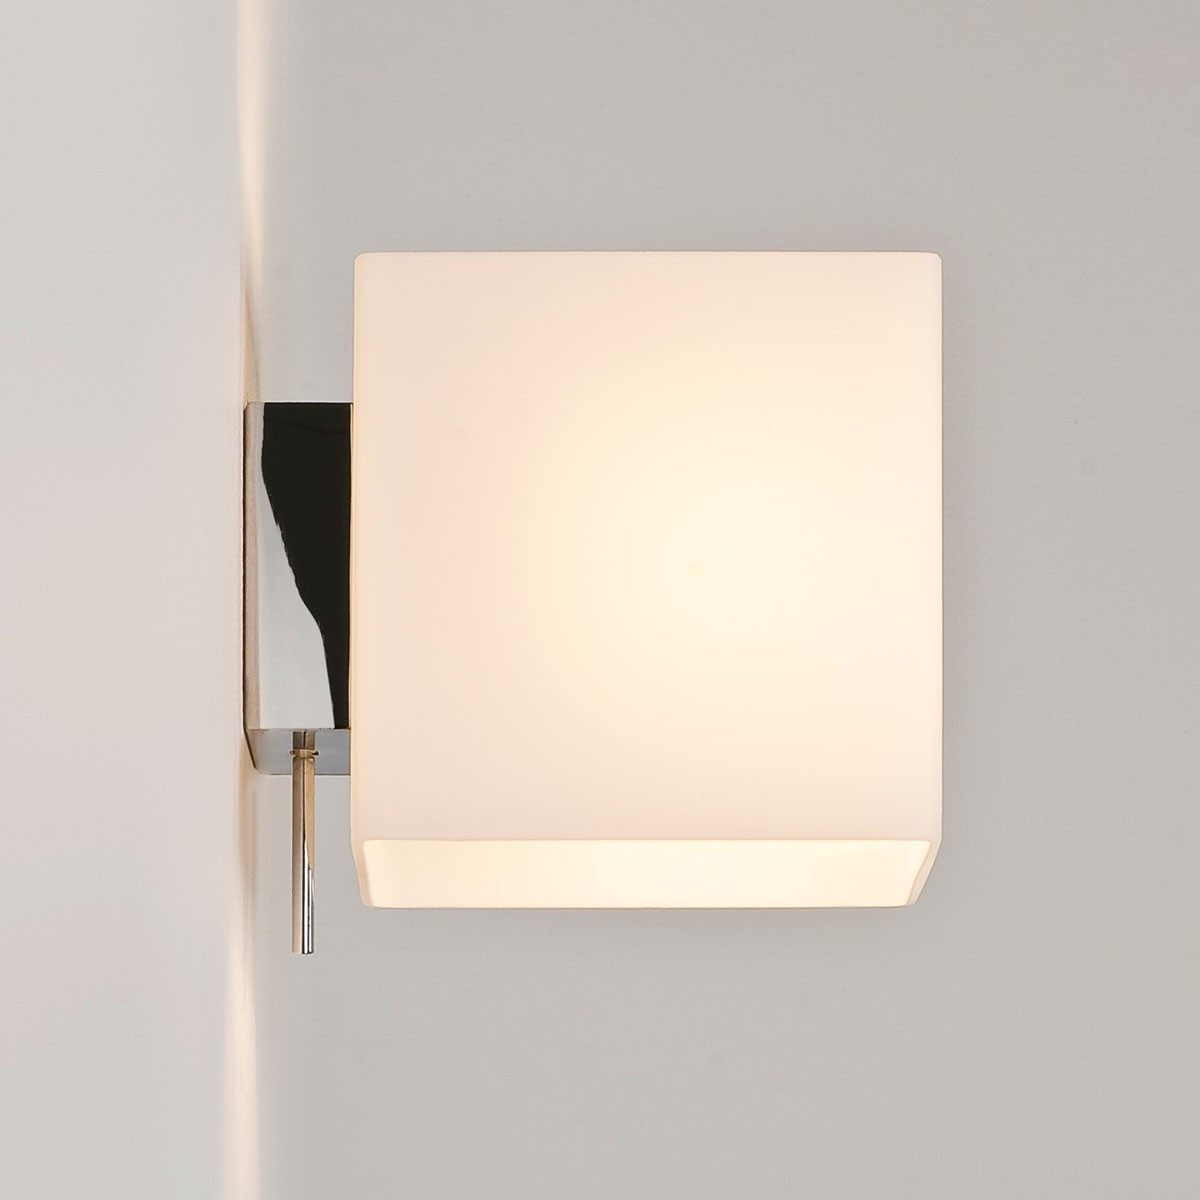 Astro Luga Switched Painted Silver and White Glass Wall Light at UK Electrical Supplies.